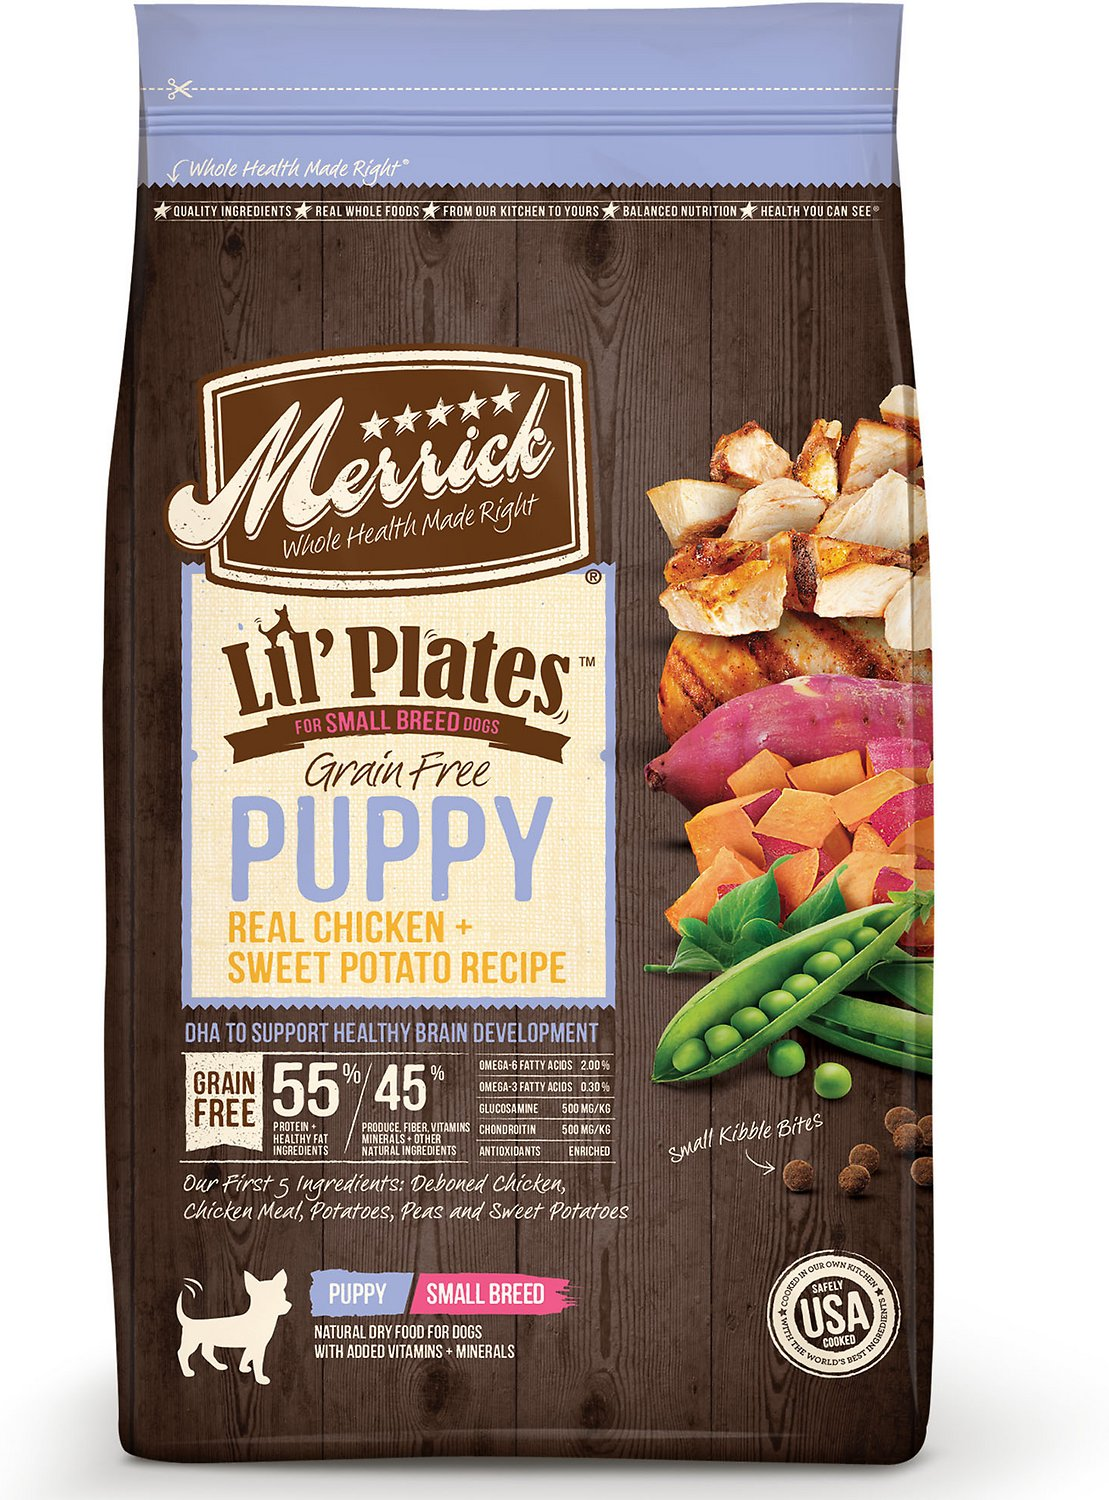 Merrick Lil' Plates Grain-Free Real Chicken & Sweet Potato Puppy Small Breed Dry Dog Food Image